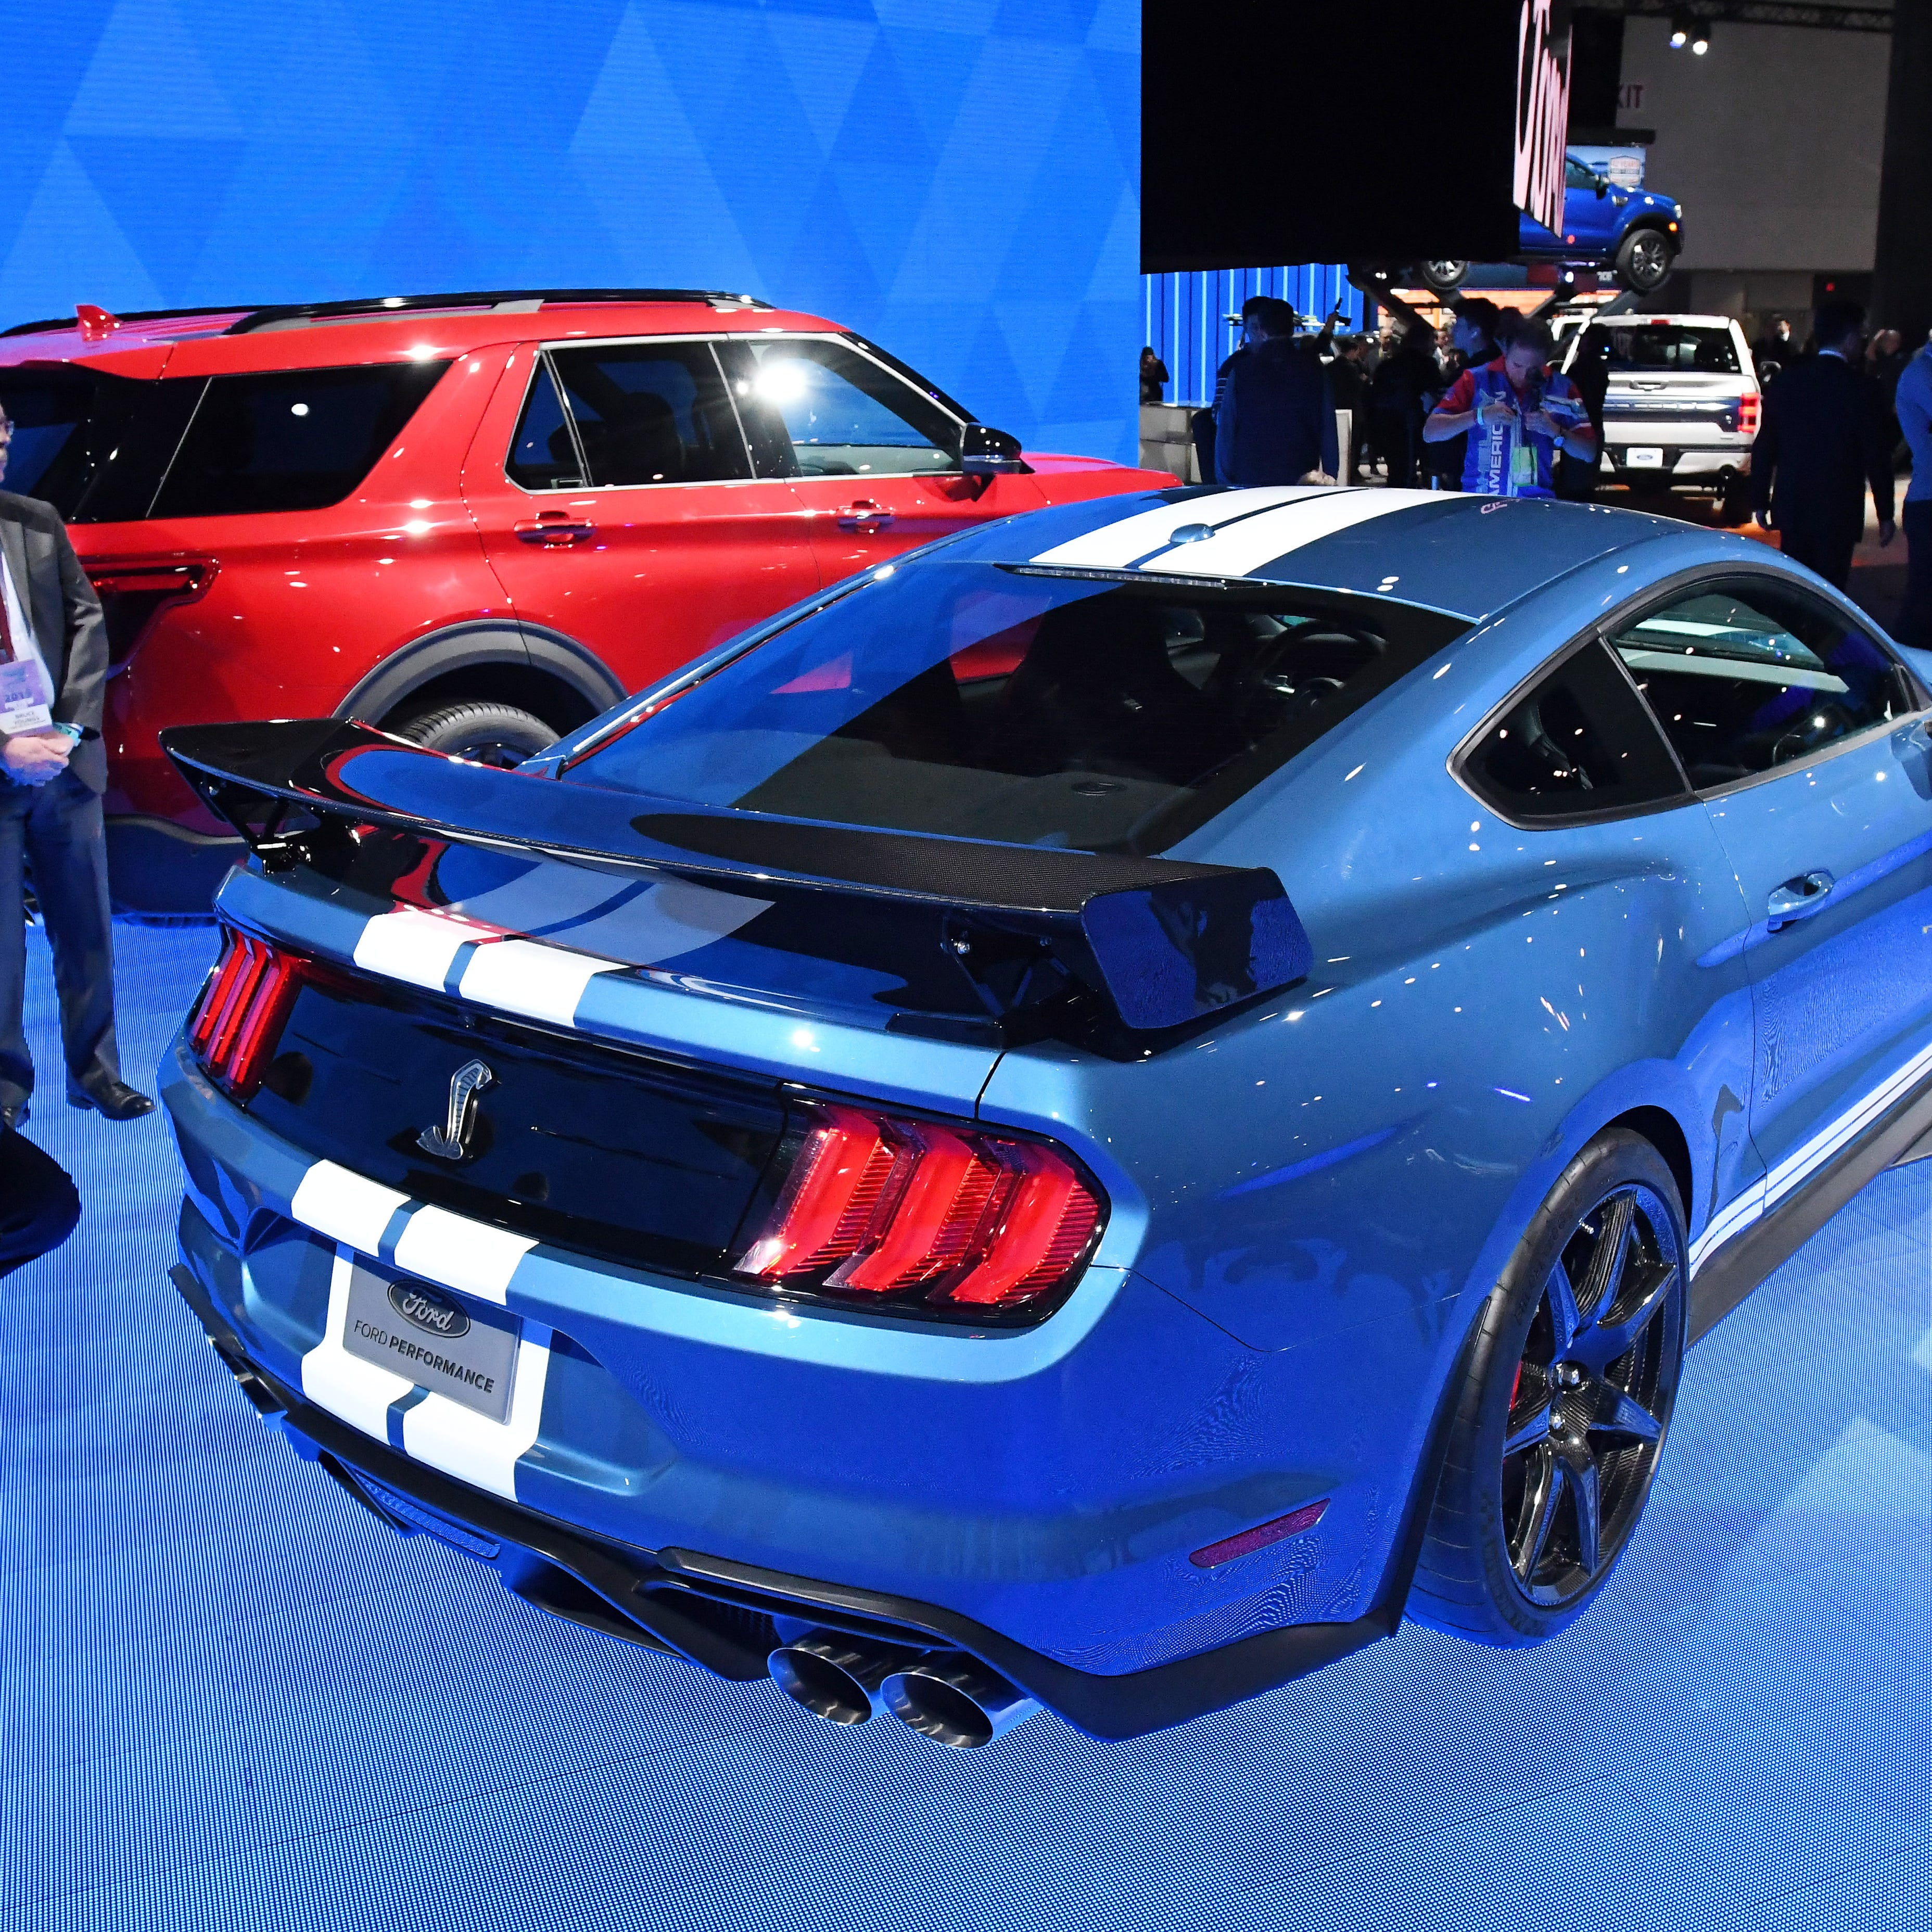 The Shelby Mustang GT500